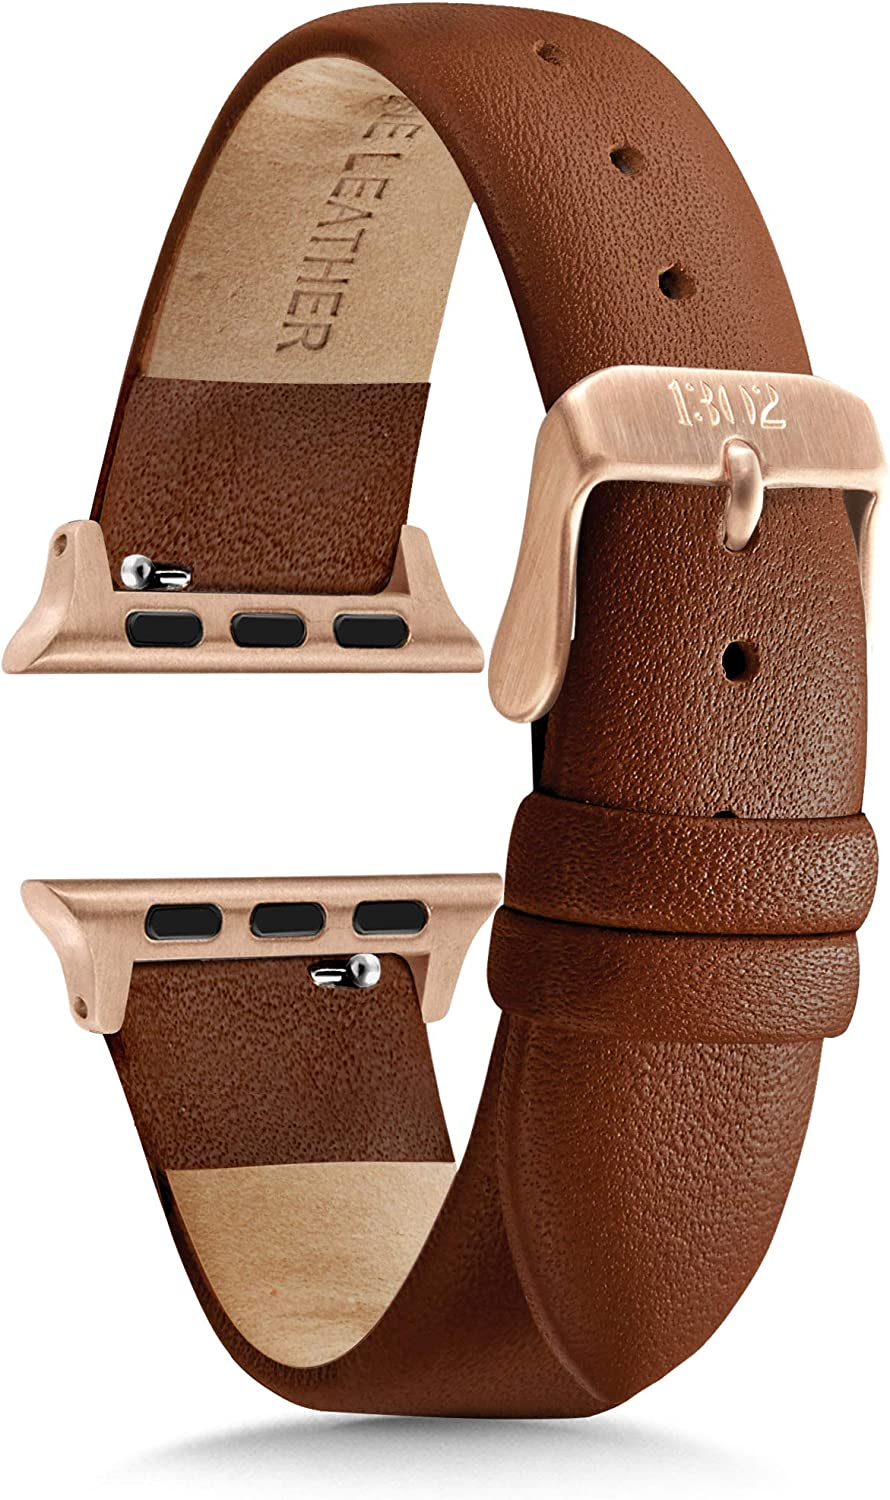 Compatible with Apple Watch Bands 38mm Women - Apple Watch Bands Women - Apple Watch Band 40mm Series 4 - Apple Watch Band Leather - Leather Apple Watch Band - Rose Gold Apple Watch Band - Brown